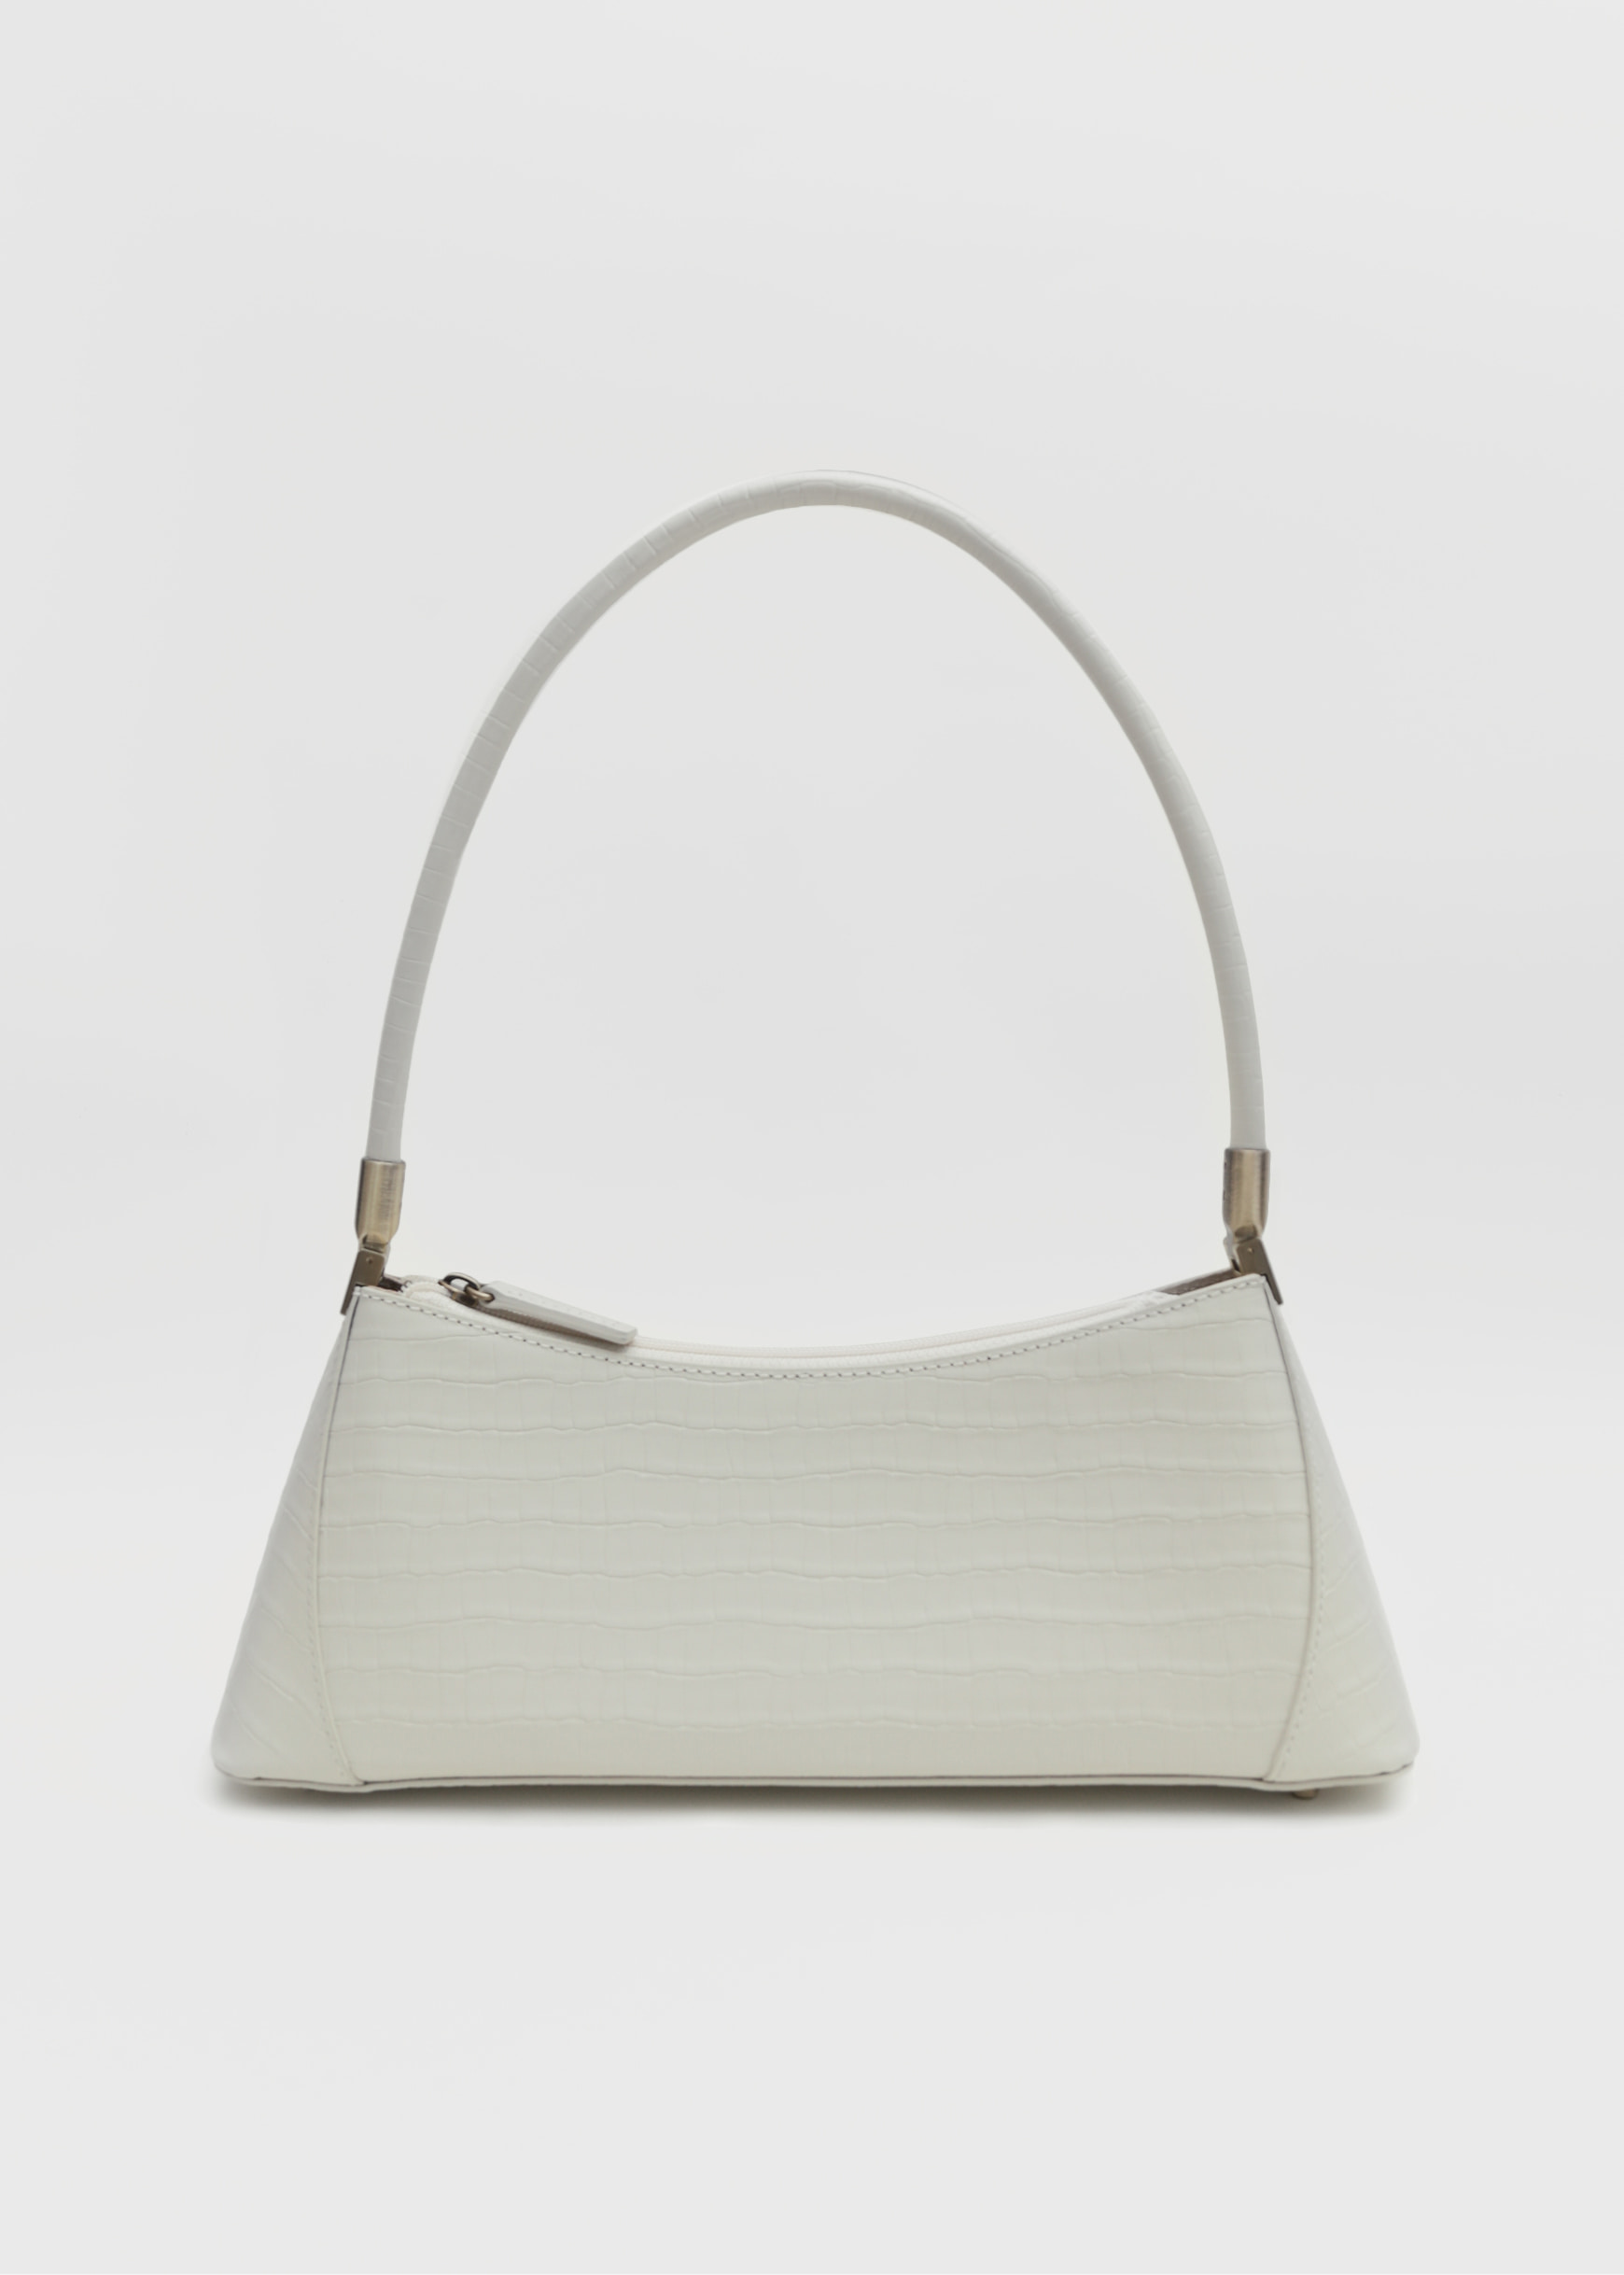 KLARRA IVORY CROC EMBOSSED LEATHER